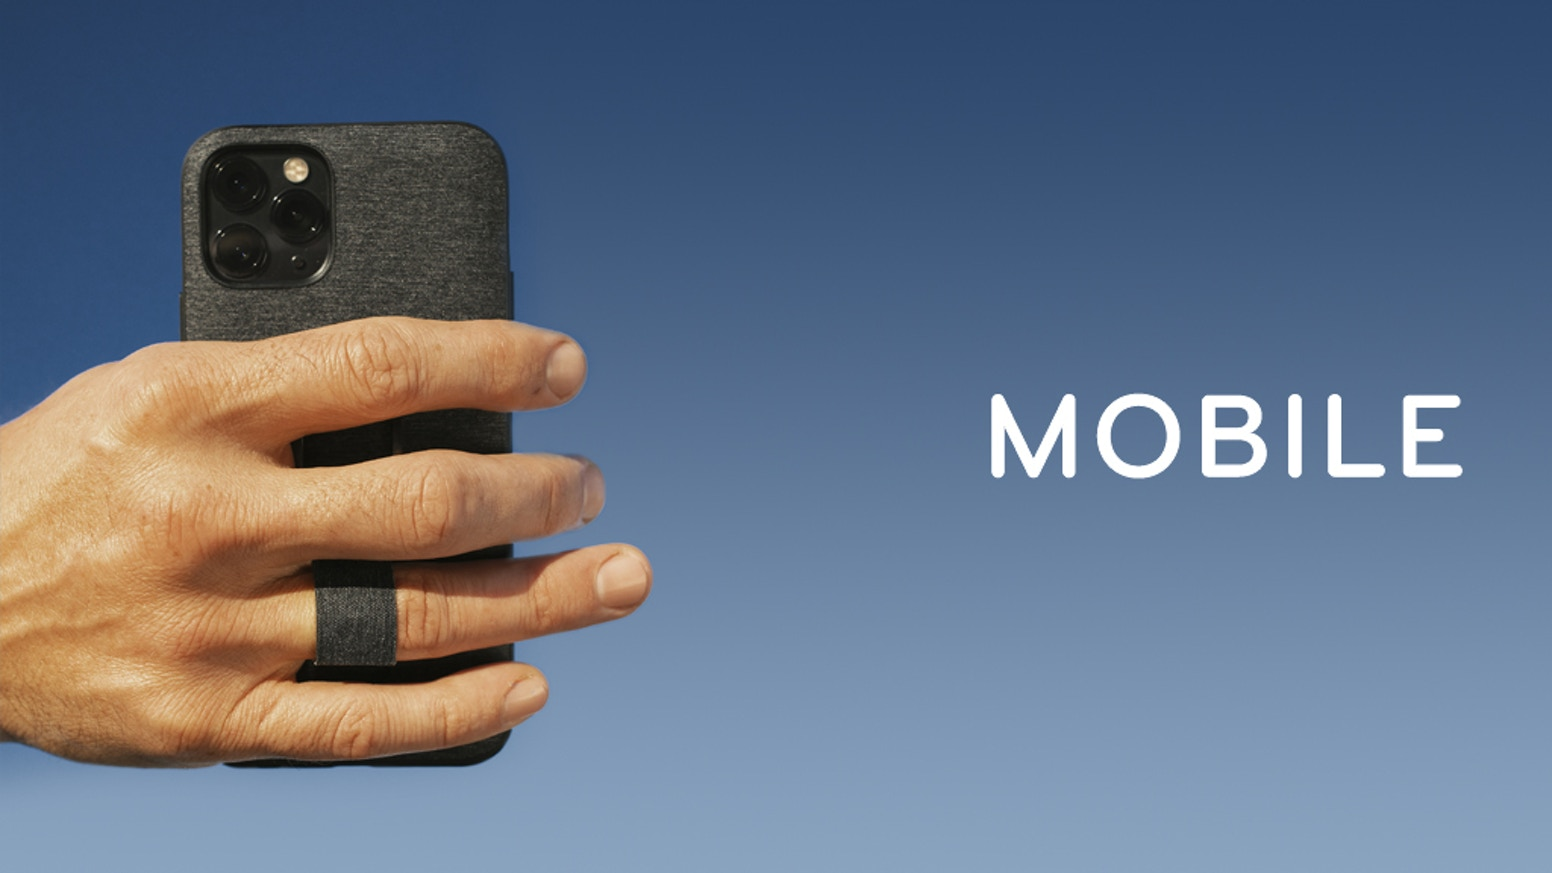 Mobile: A phone case that does more, with zero bulk.